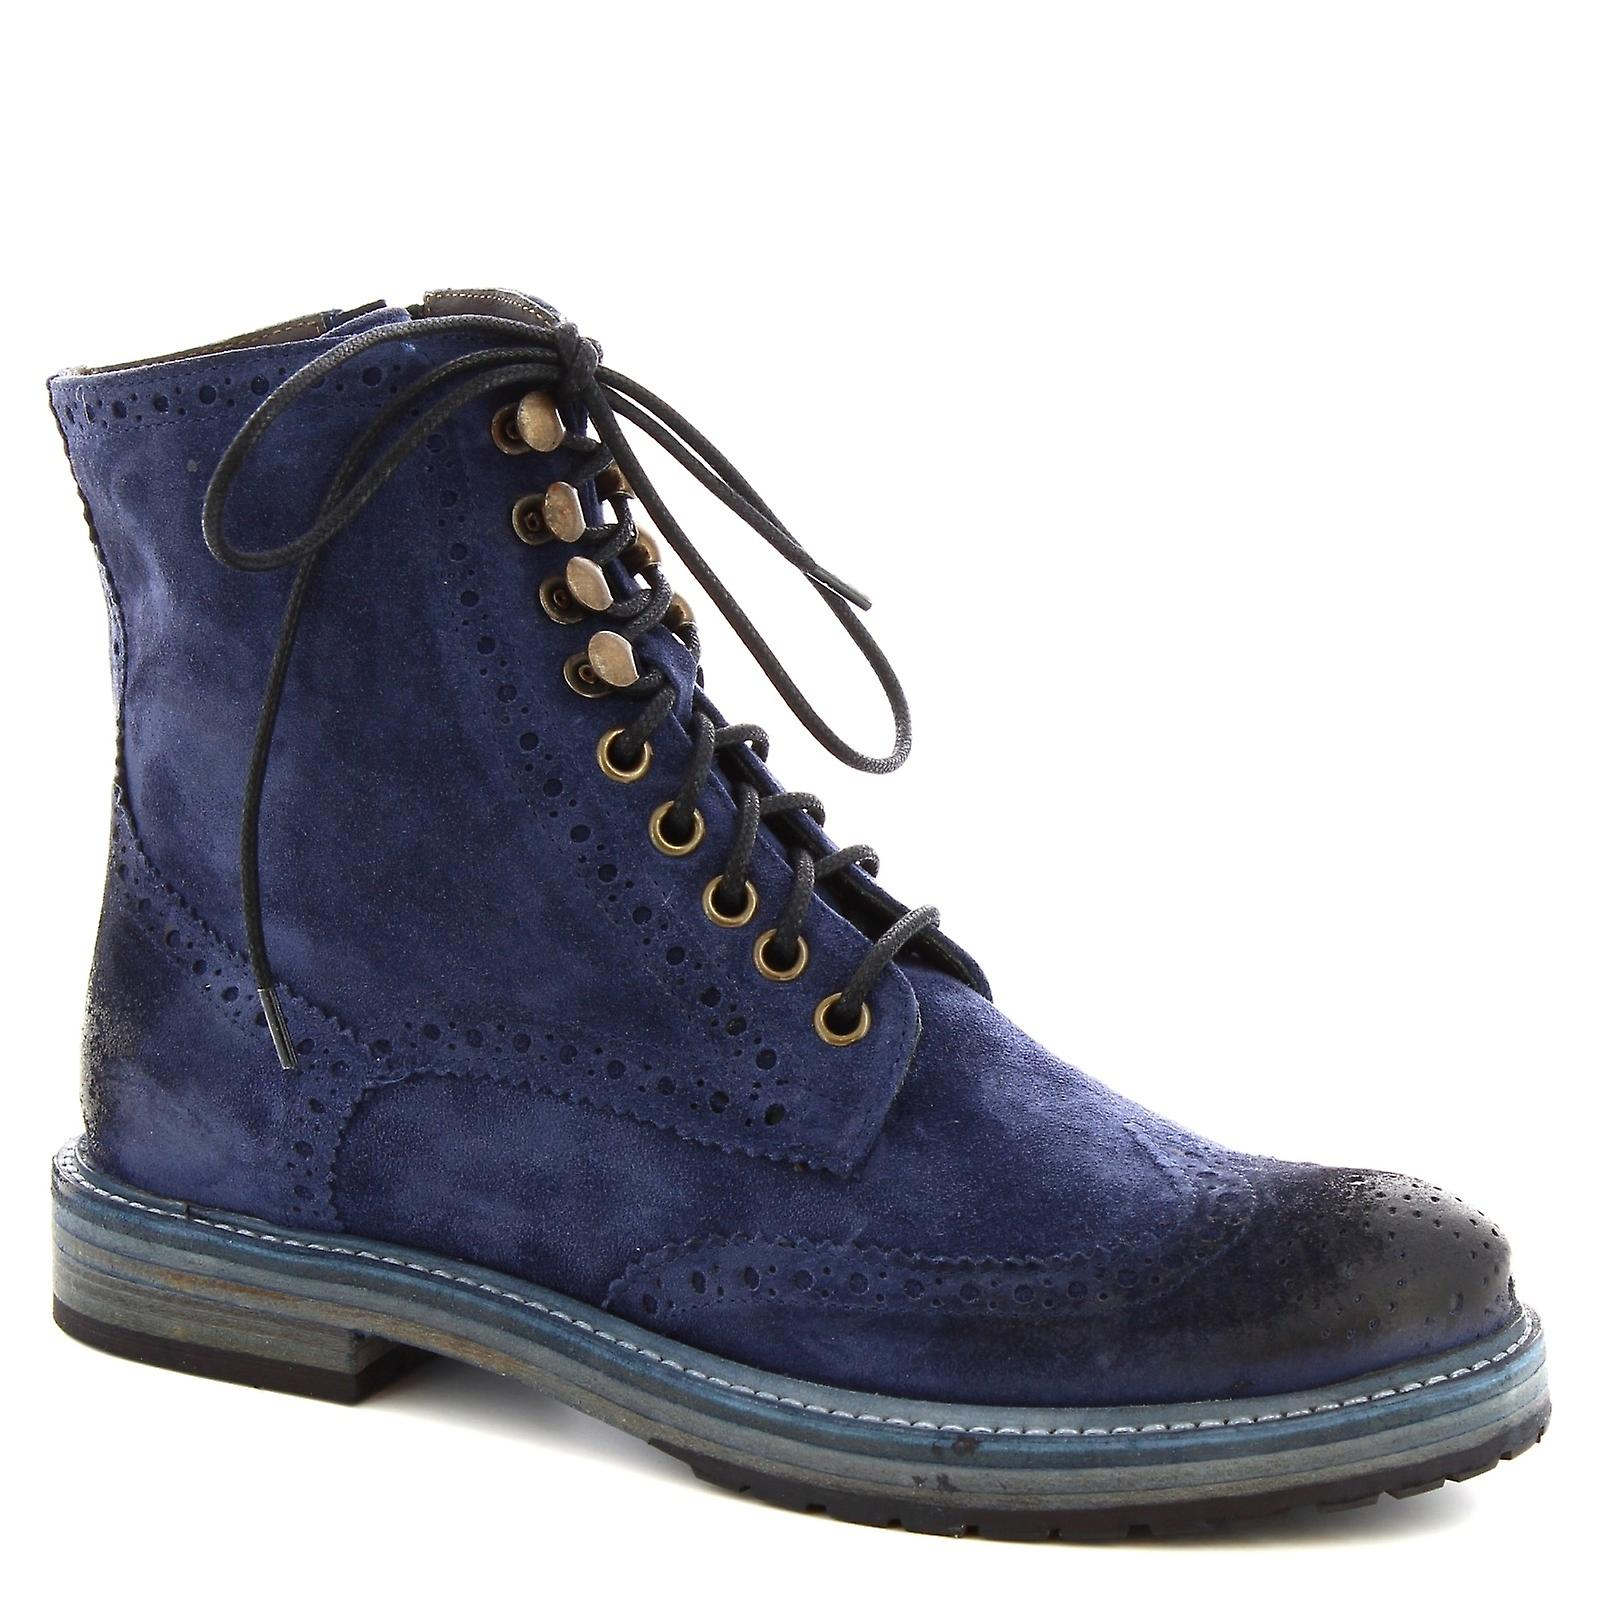 Leonardo Shoes Women's handmade laced ankle boots blue calf leather with zip